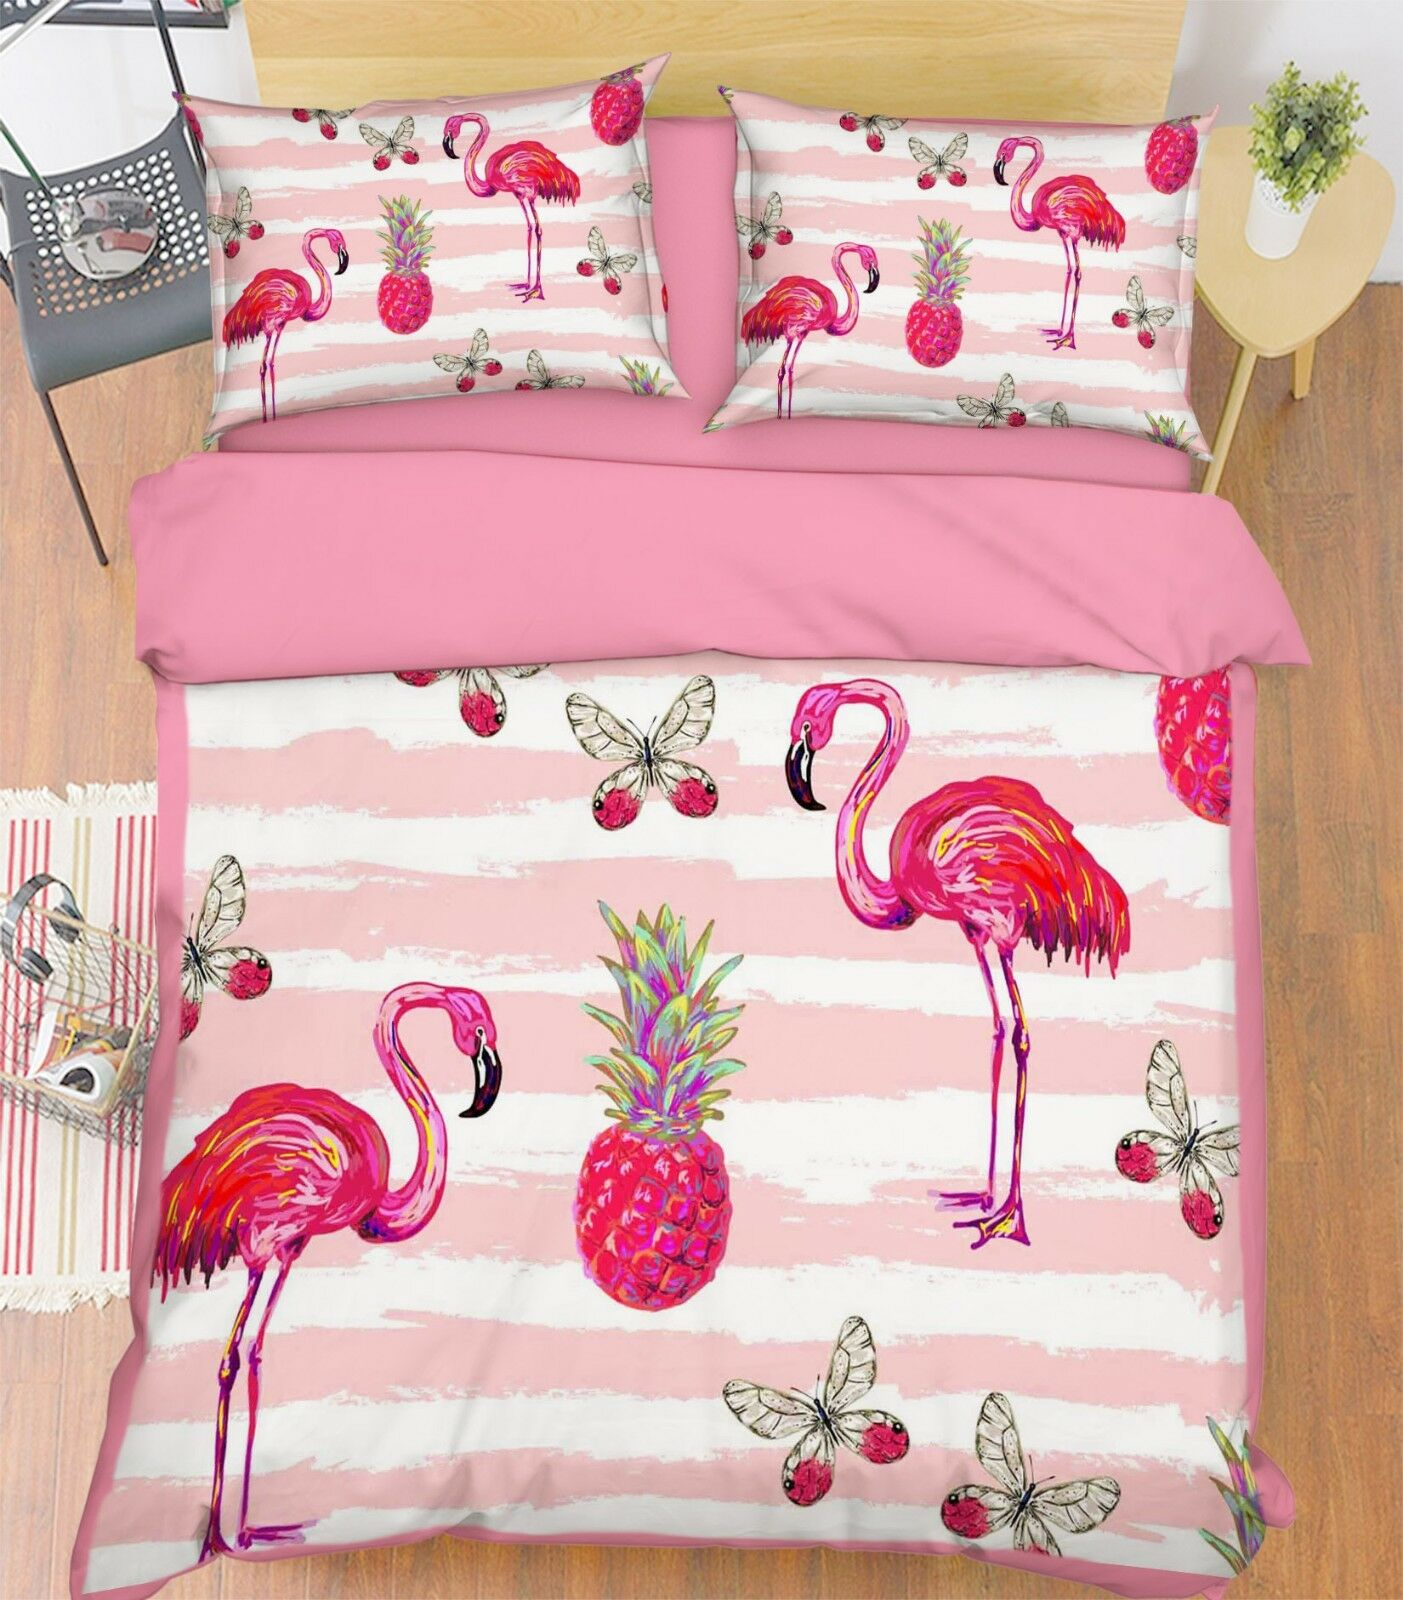 3D Birds Fruits Bed Pillowcases Quilt Duvet Cover Set Single Queen King Größe AU